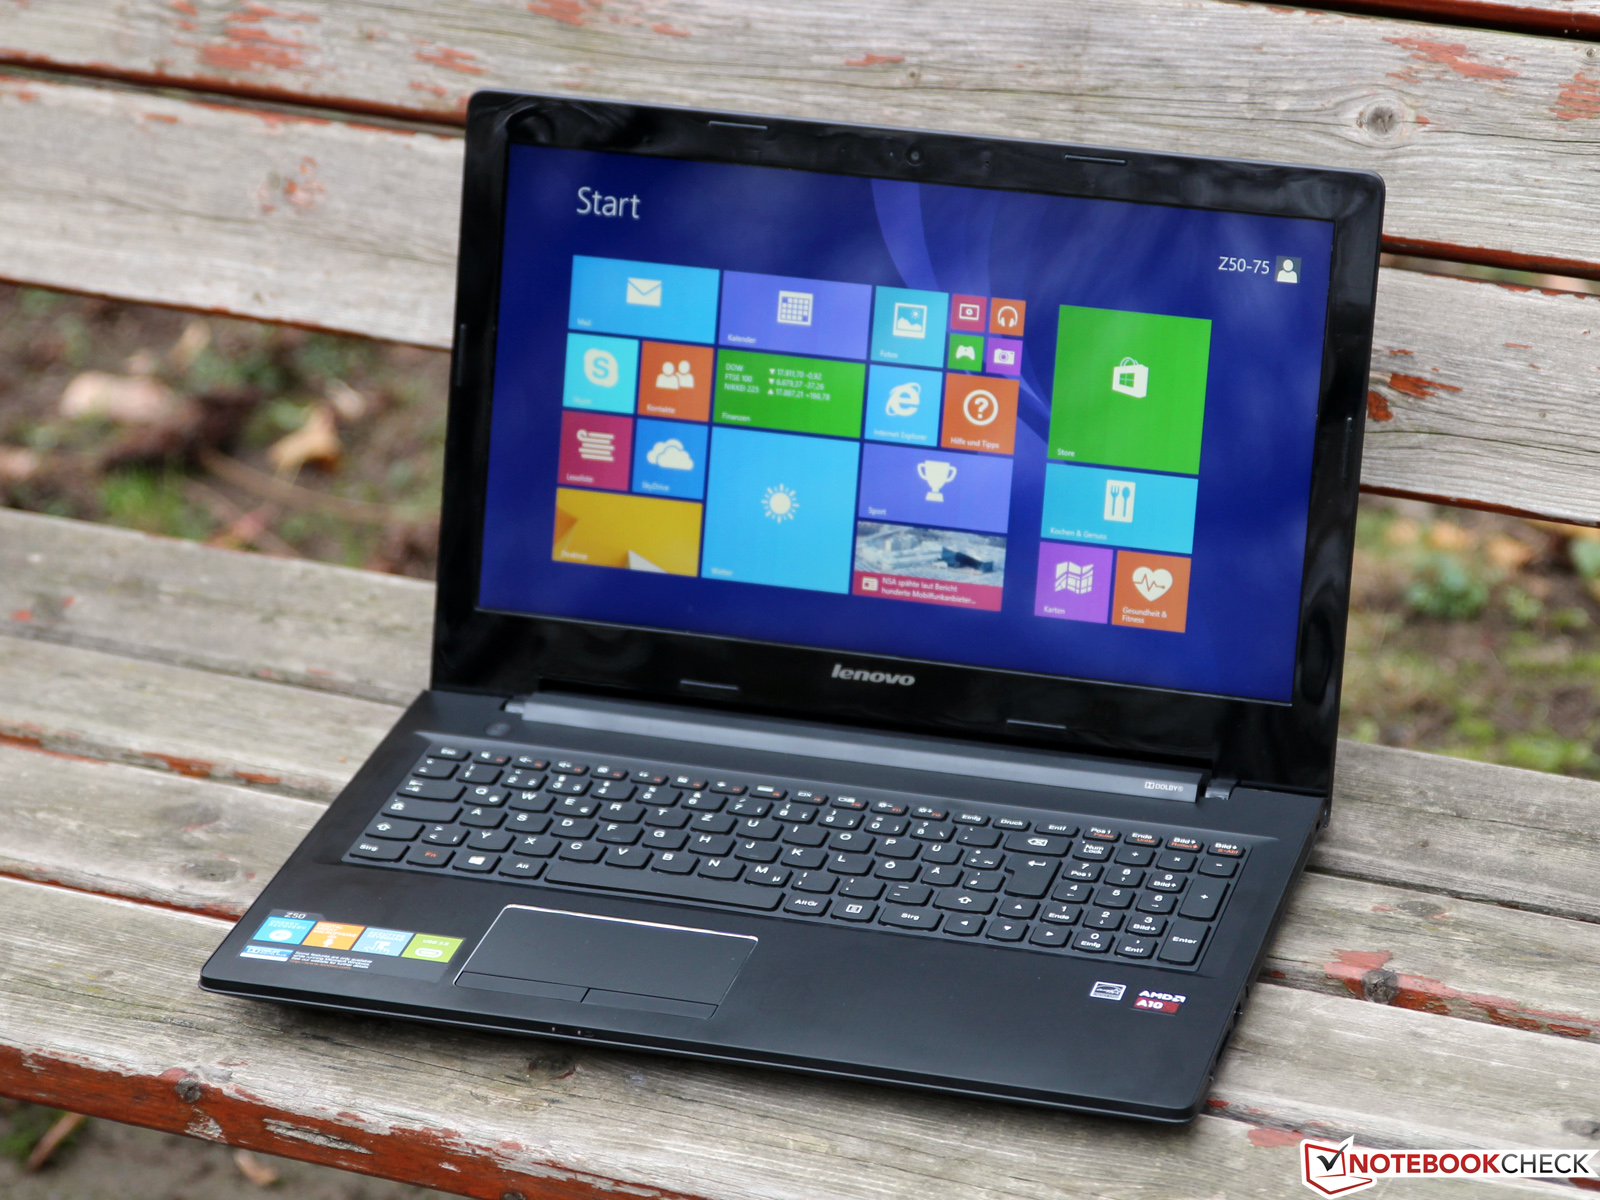 LENOVO Z40-75 AMD GRAPHICS WINDOWS 7 64BIT DRIVER DOWNLOAD